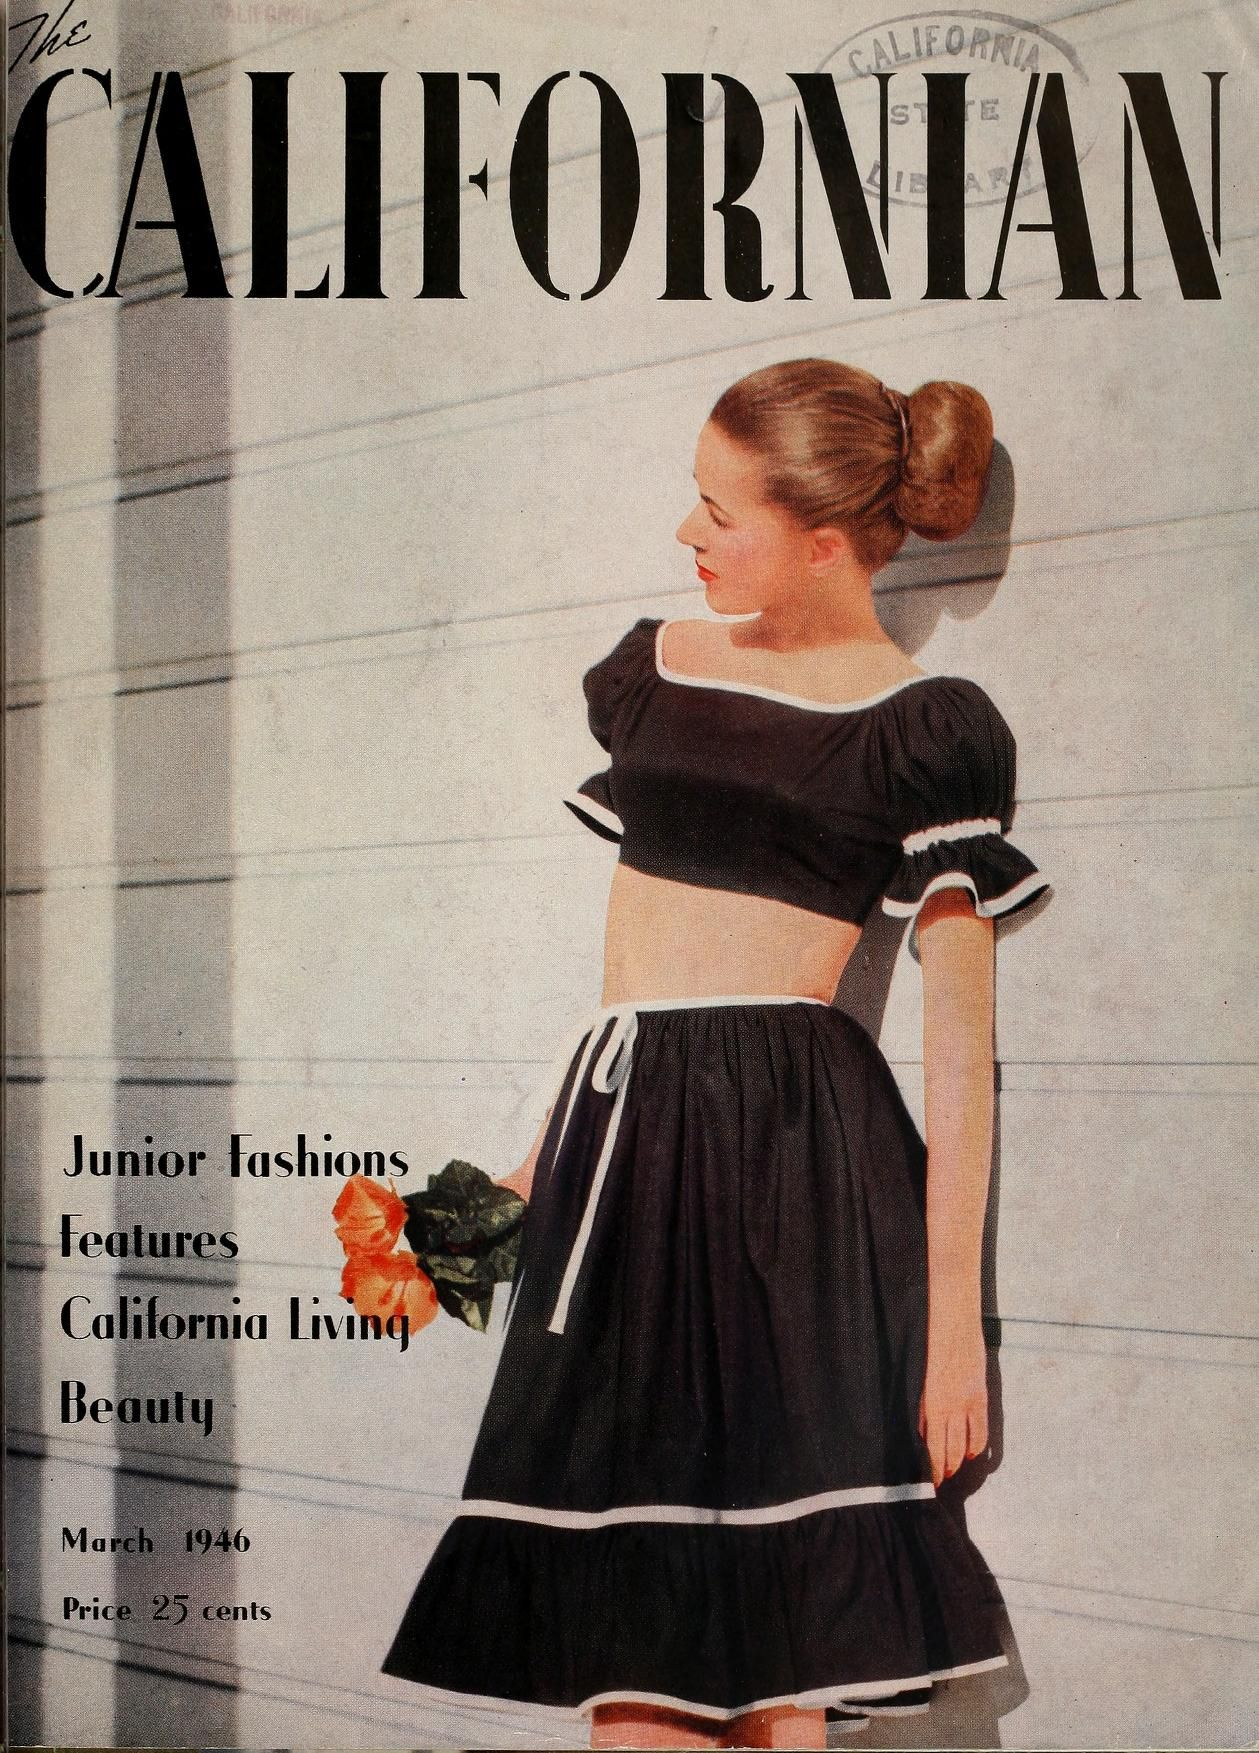 The Californian; March 1946 | archive.org